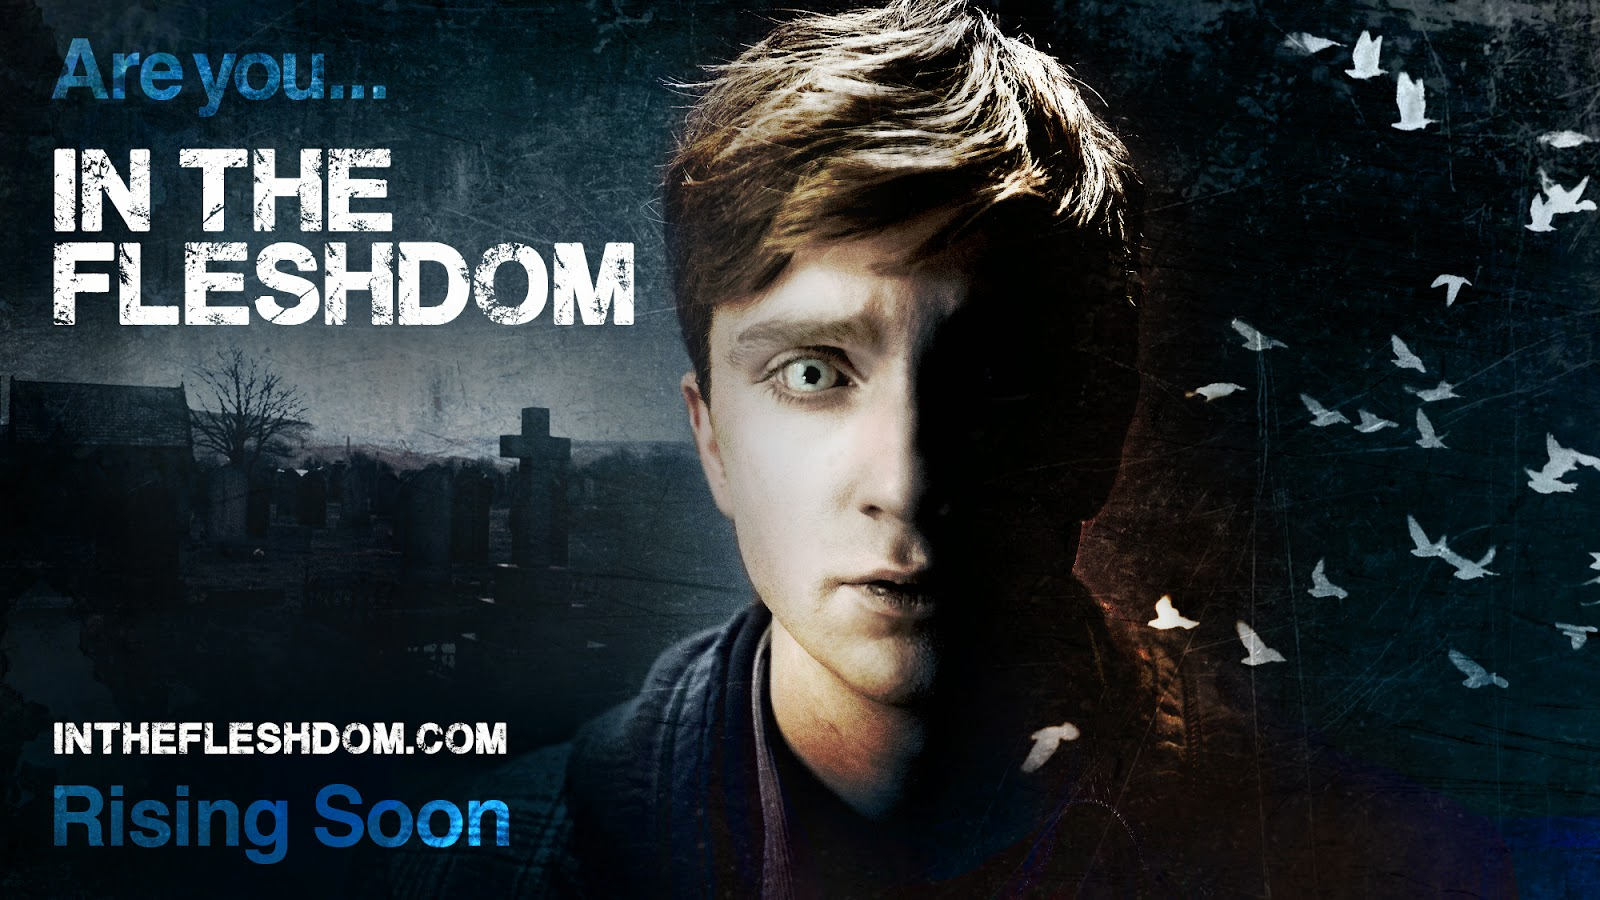 In the Flesh - Campaign to help renew the show for Season 3 #SaveInTheFlesh